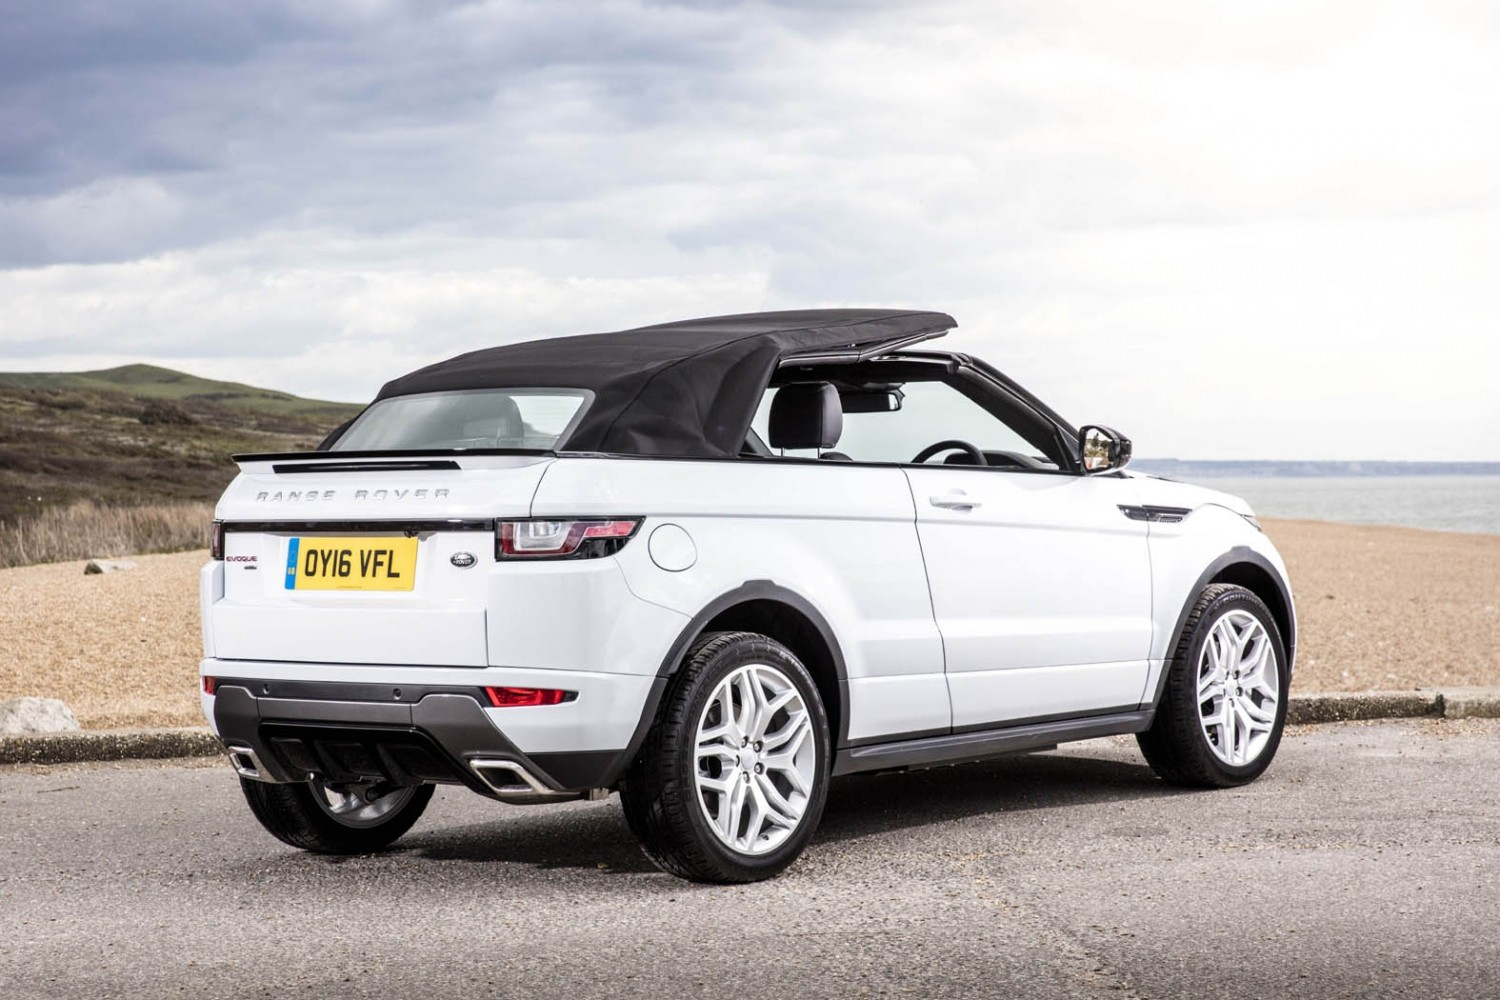 of test land expert range drive evoque rover price landrover convertible review